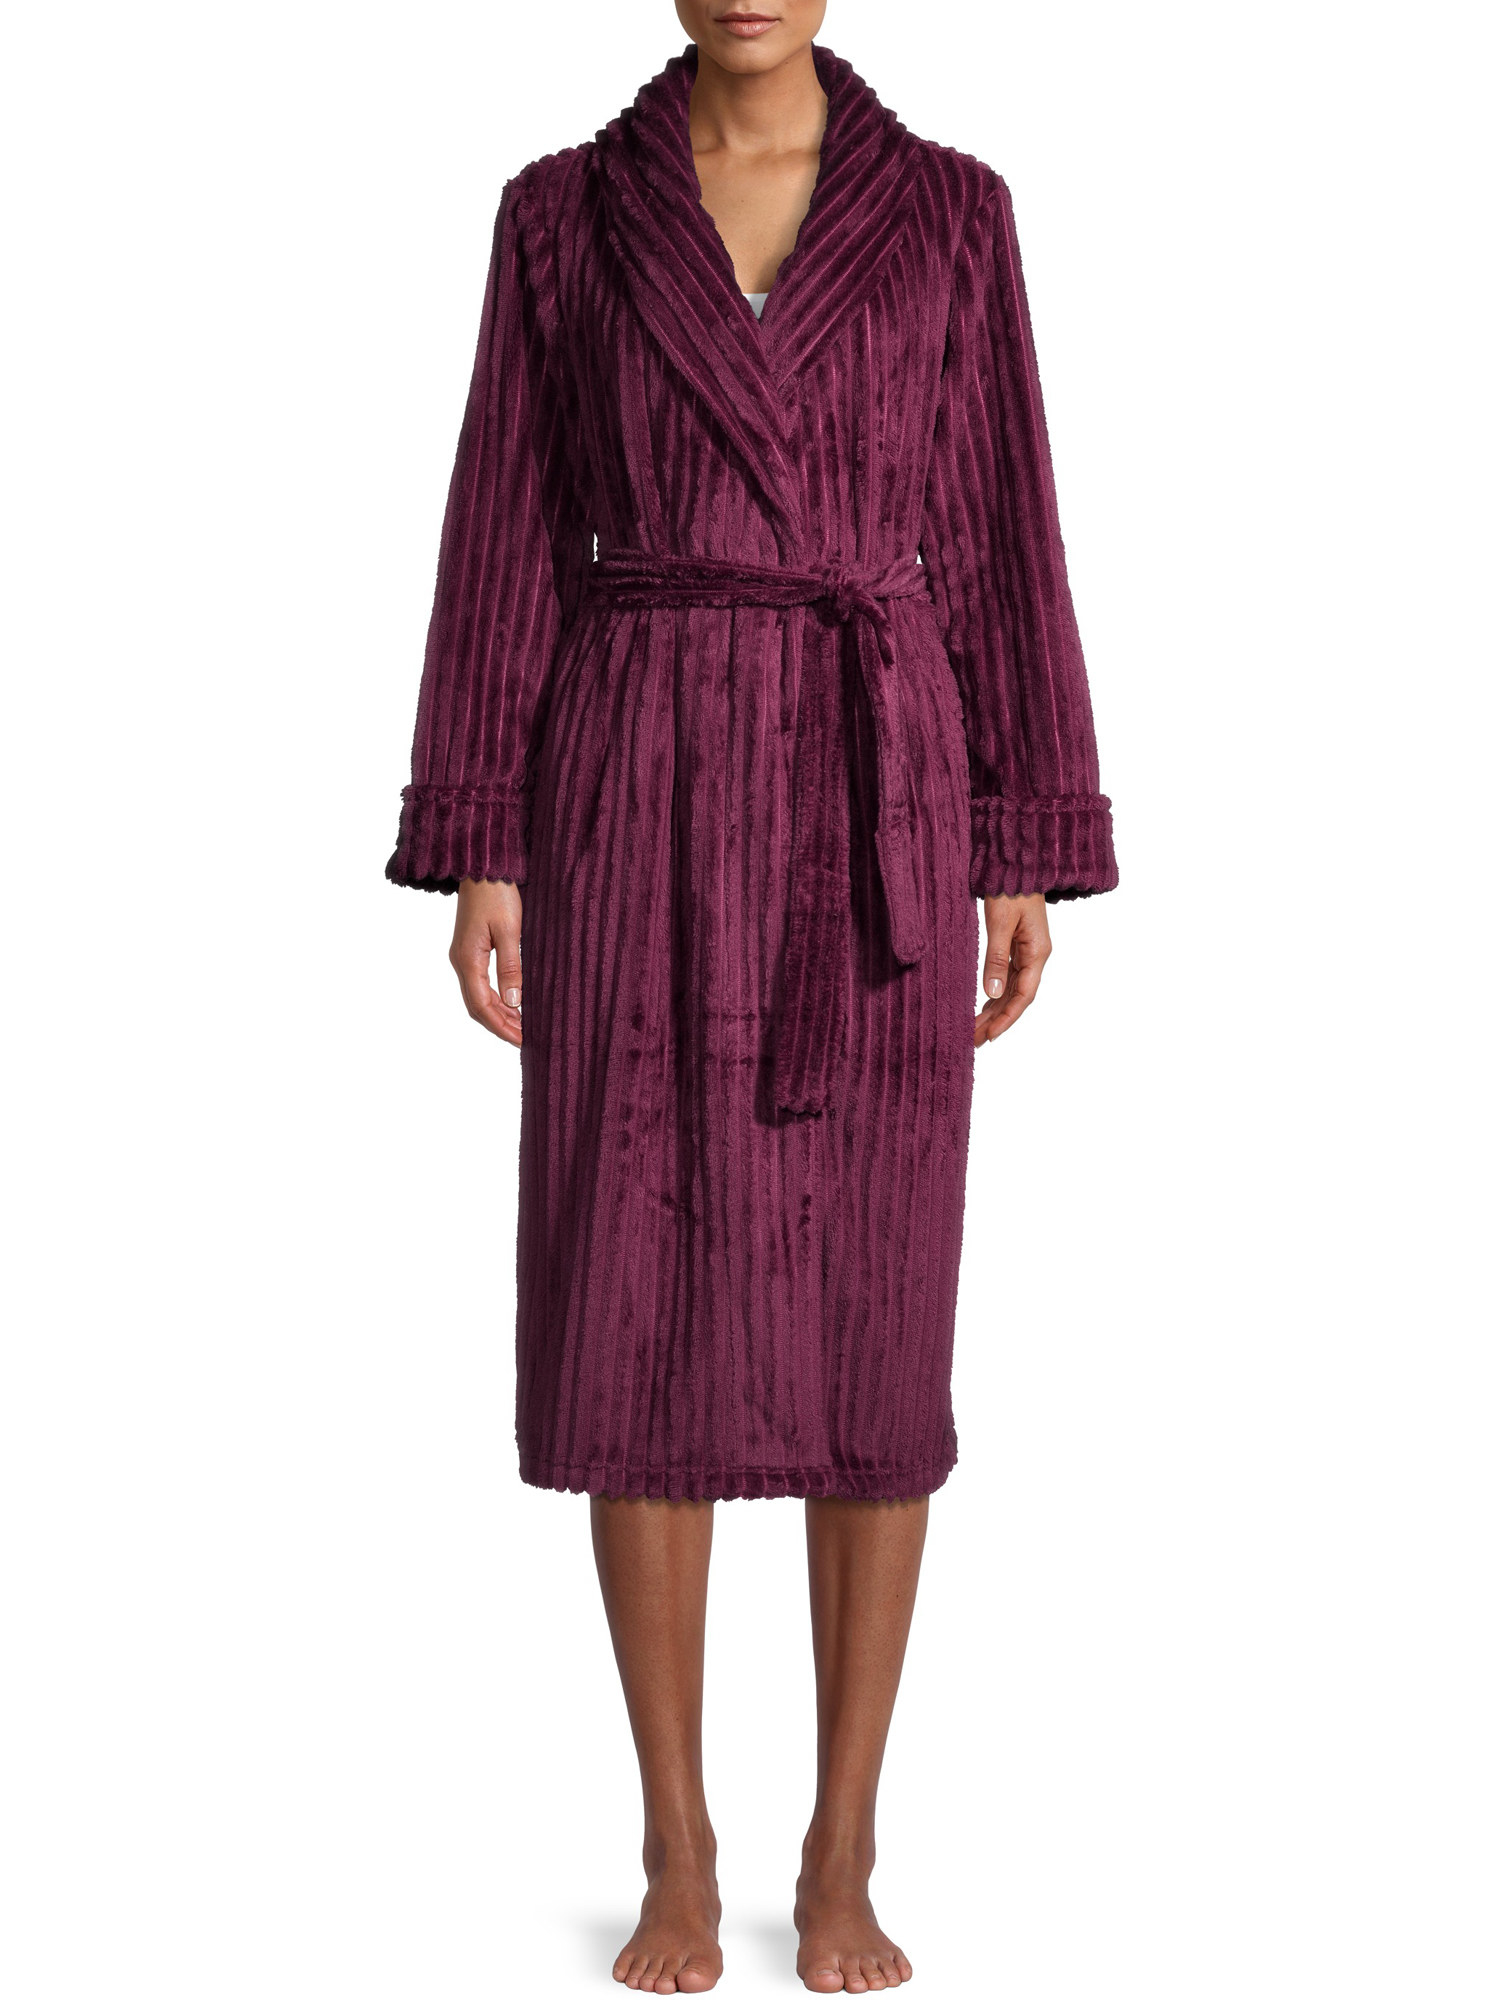 the robe in purple